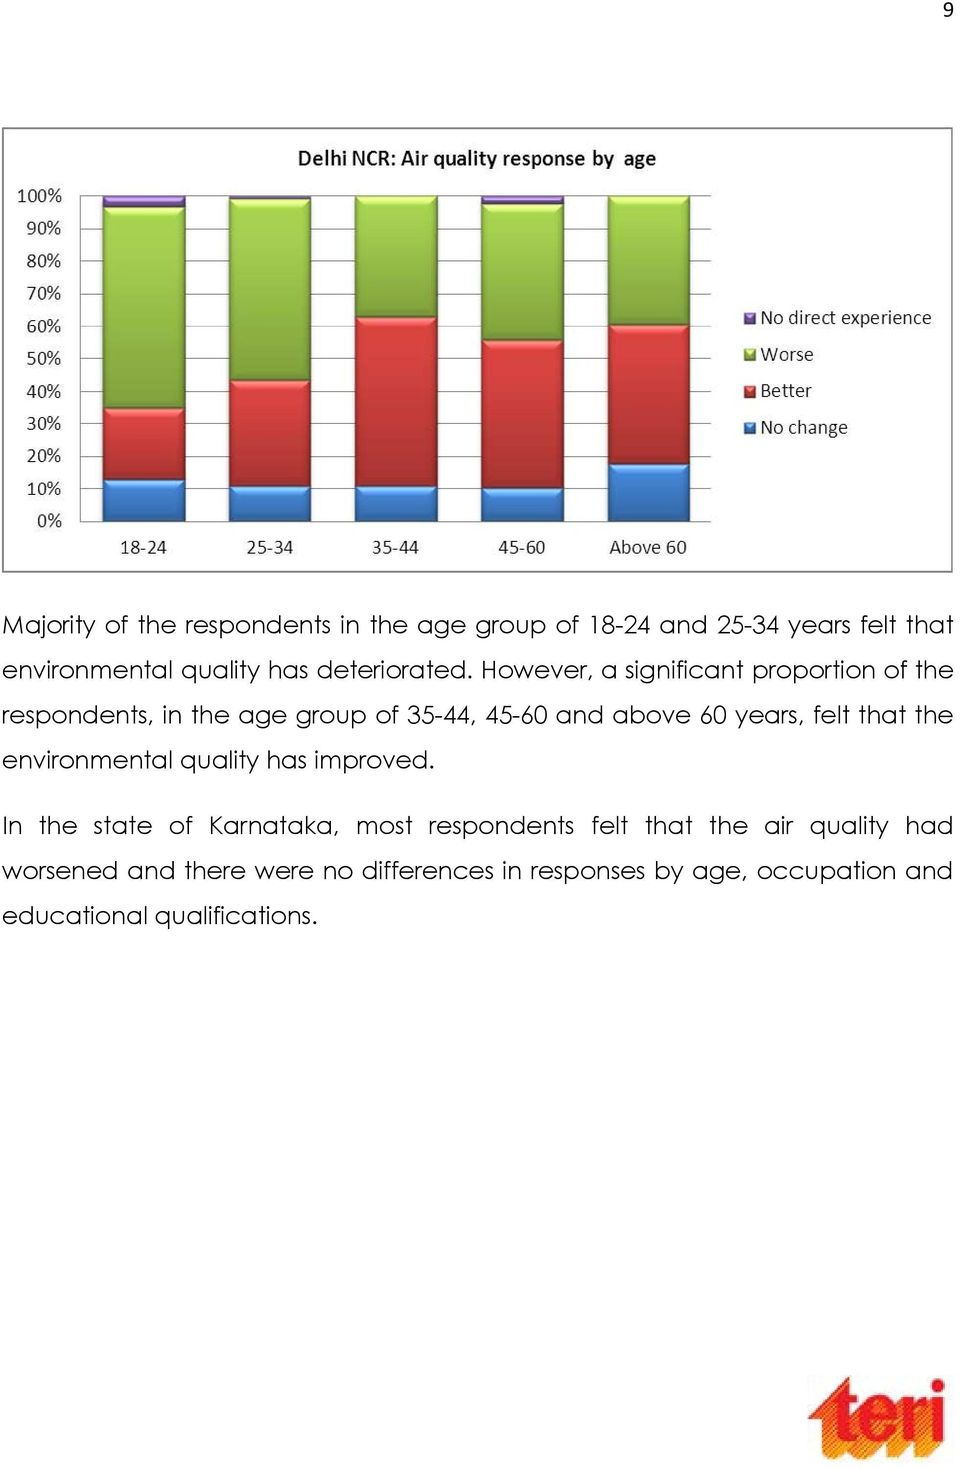 However, a significant proportion of the respondents, in the age group of 35-44, 45-60 and above 60 years, felt